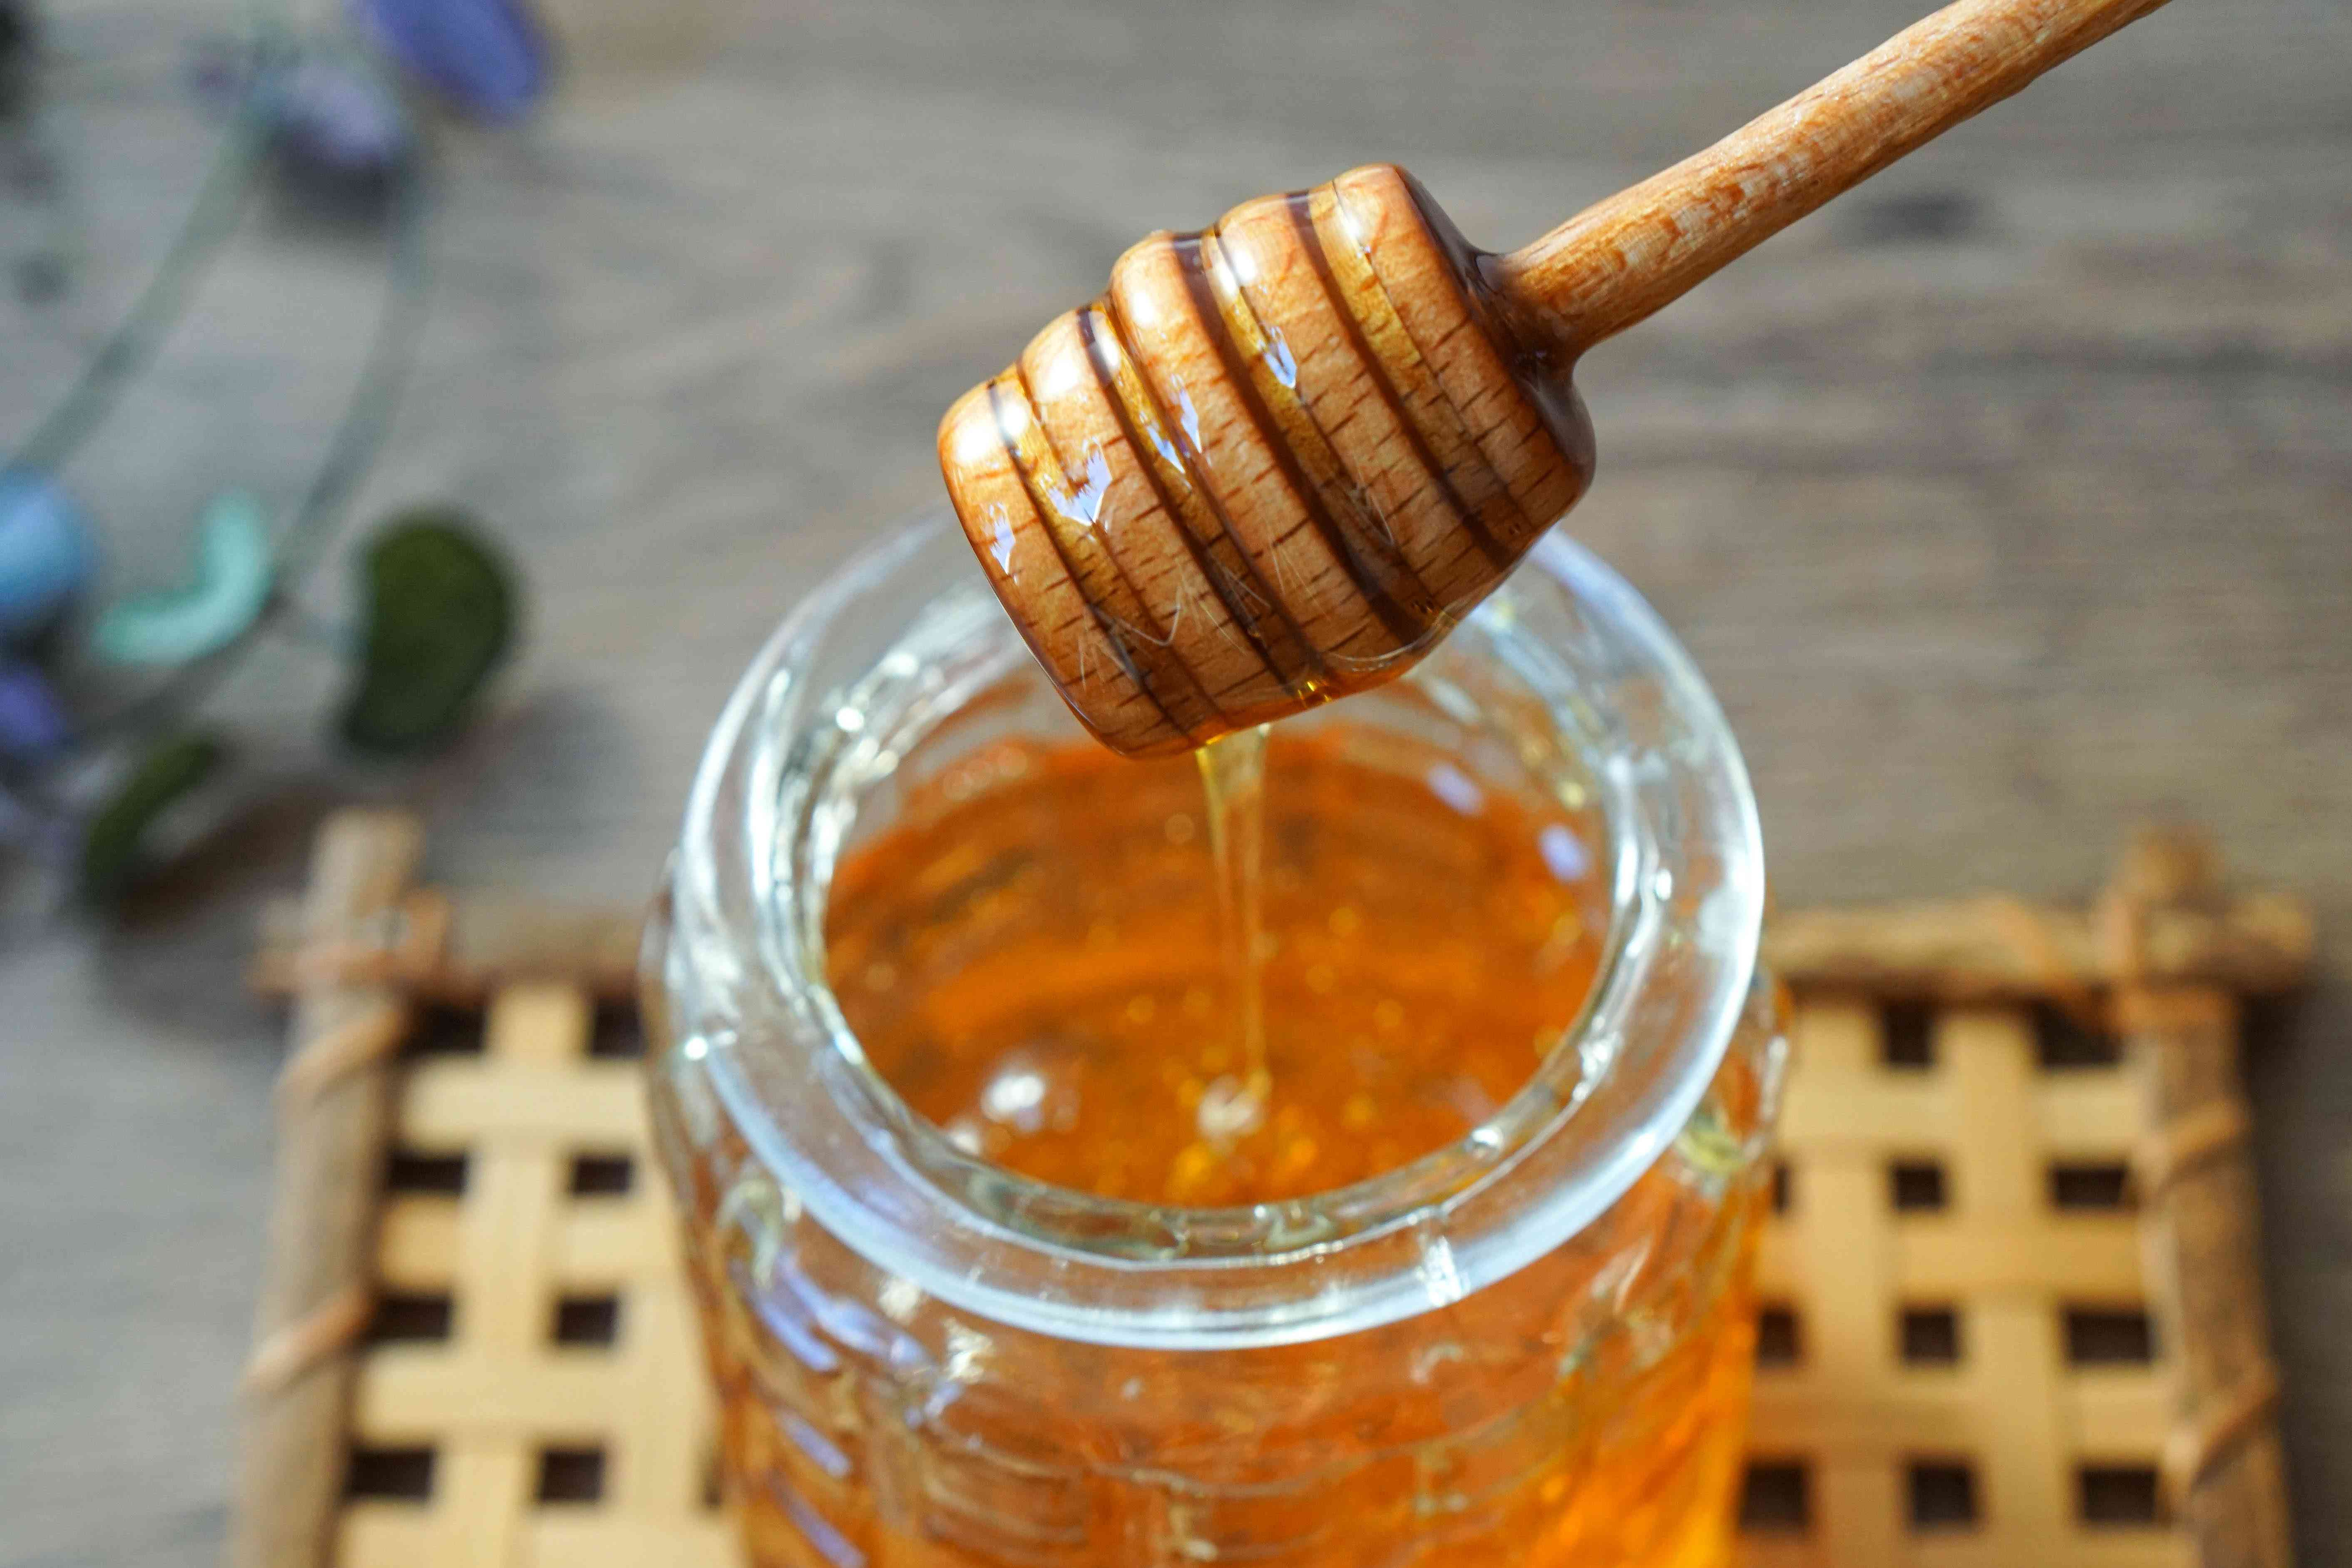 wooden honey dipper is pulled out of glass container dripping with honey